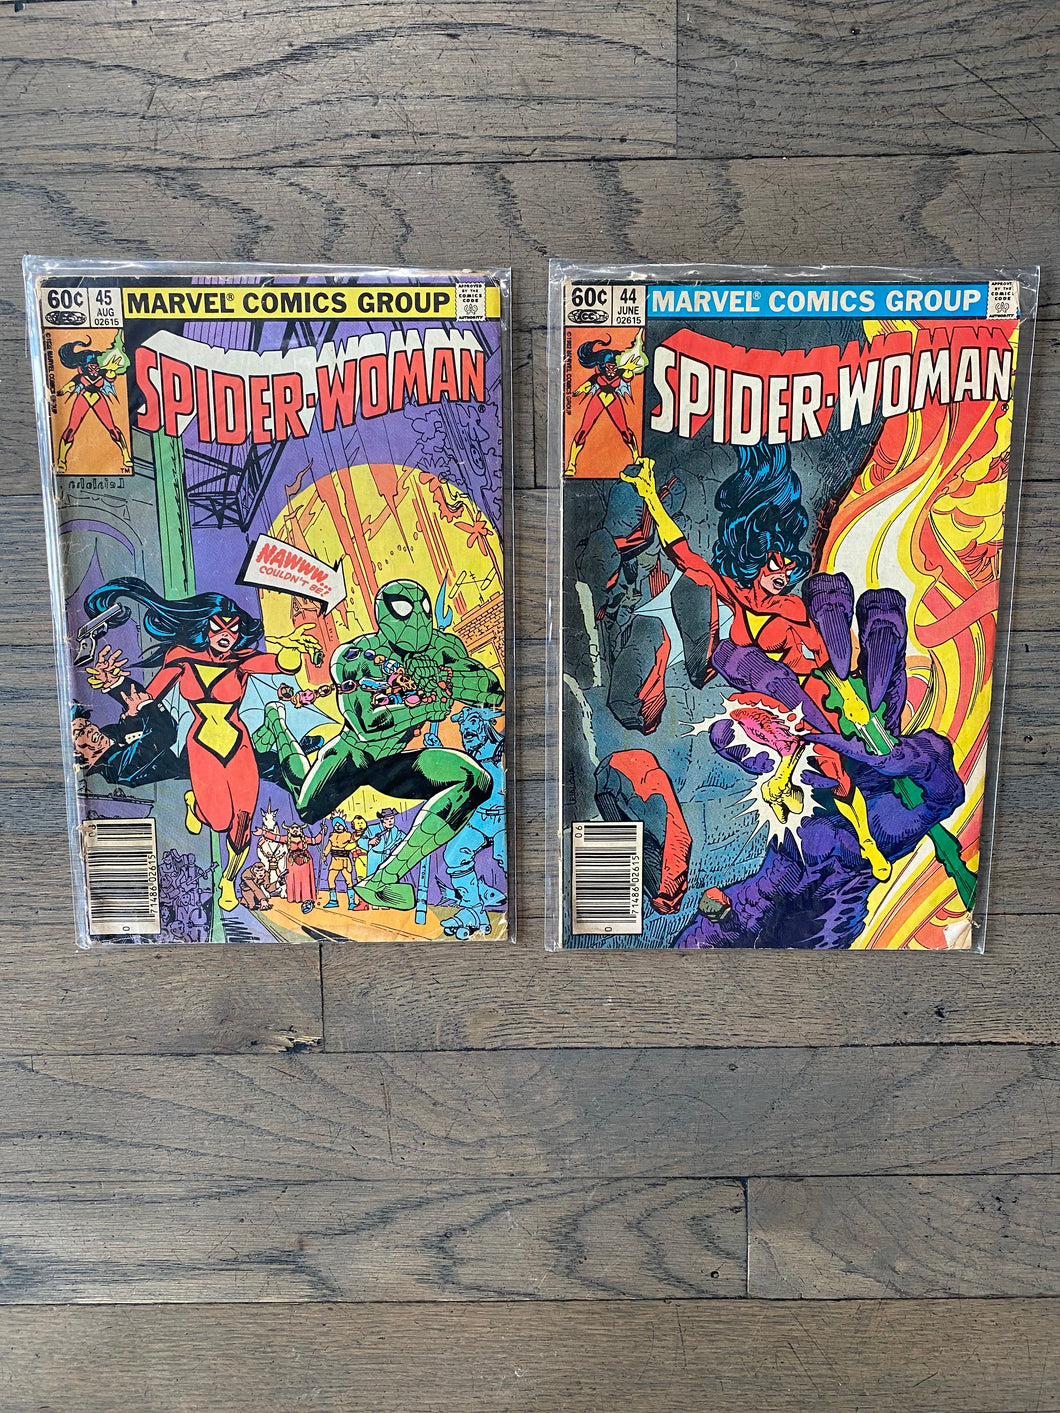 Spider-Woman 2-Pack